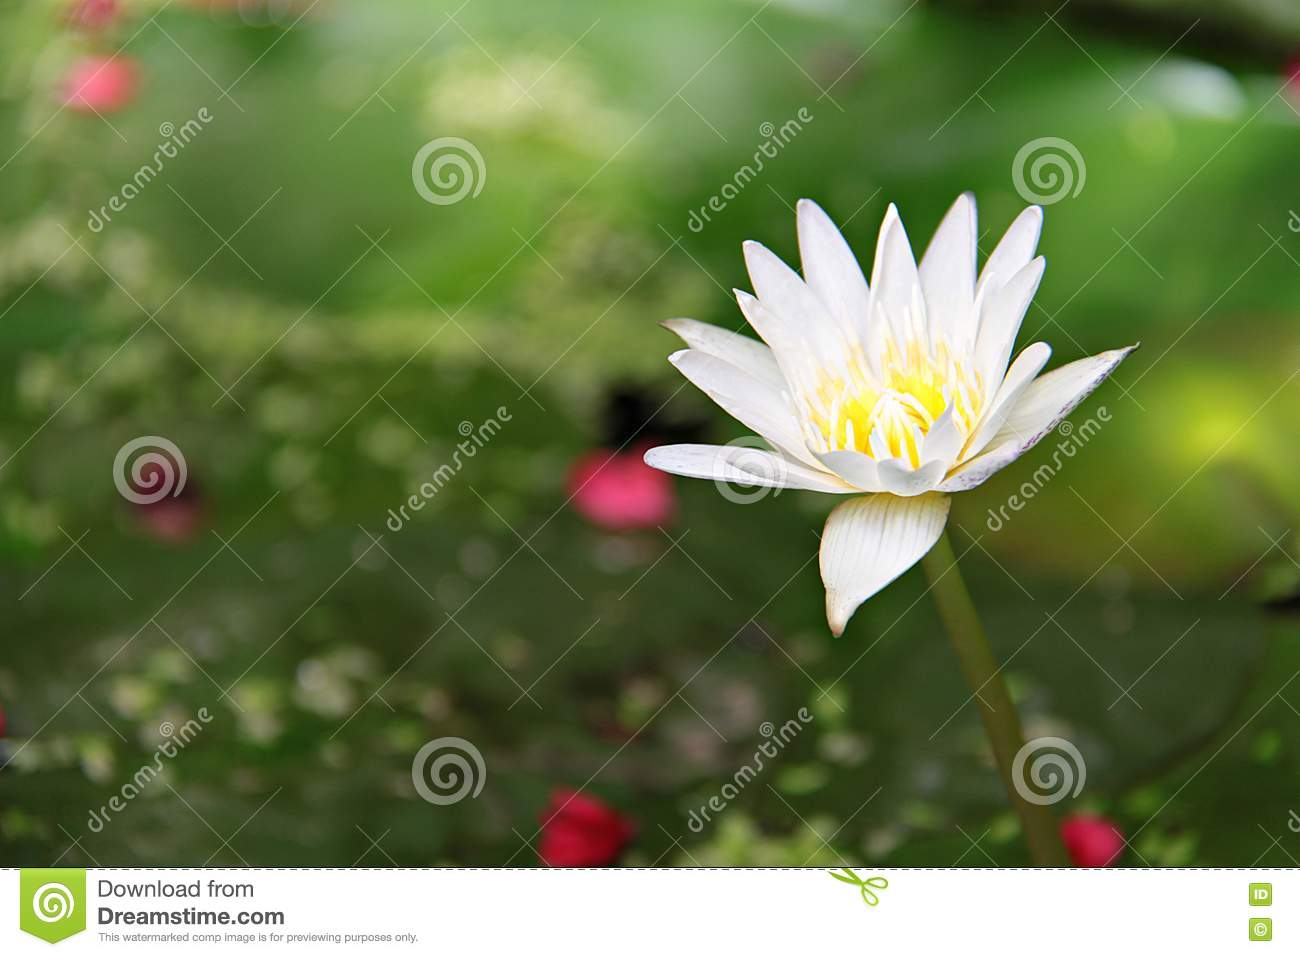 Beautiful White Lotus Flower Or Water Lily Blooming On Pond Stock